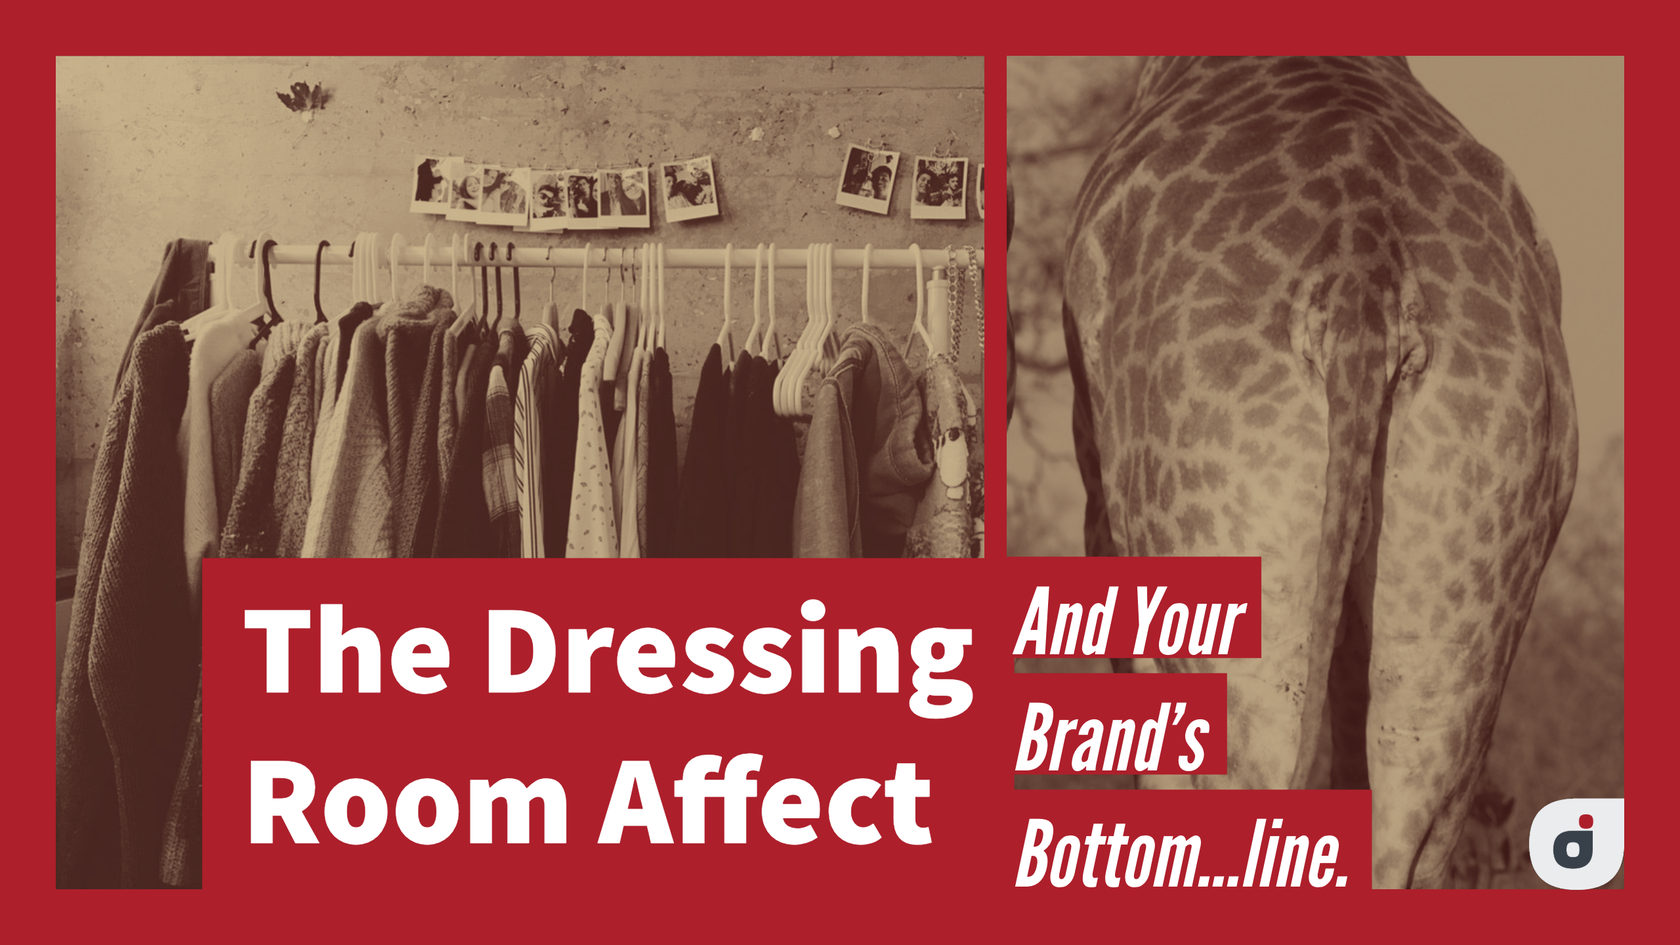 Blog Article Title Graphic: Why You'd Be A Fool To Ignore 'The Dressing Room Affect' Between Your Brand Strategy And Your Bottom…line